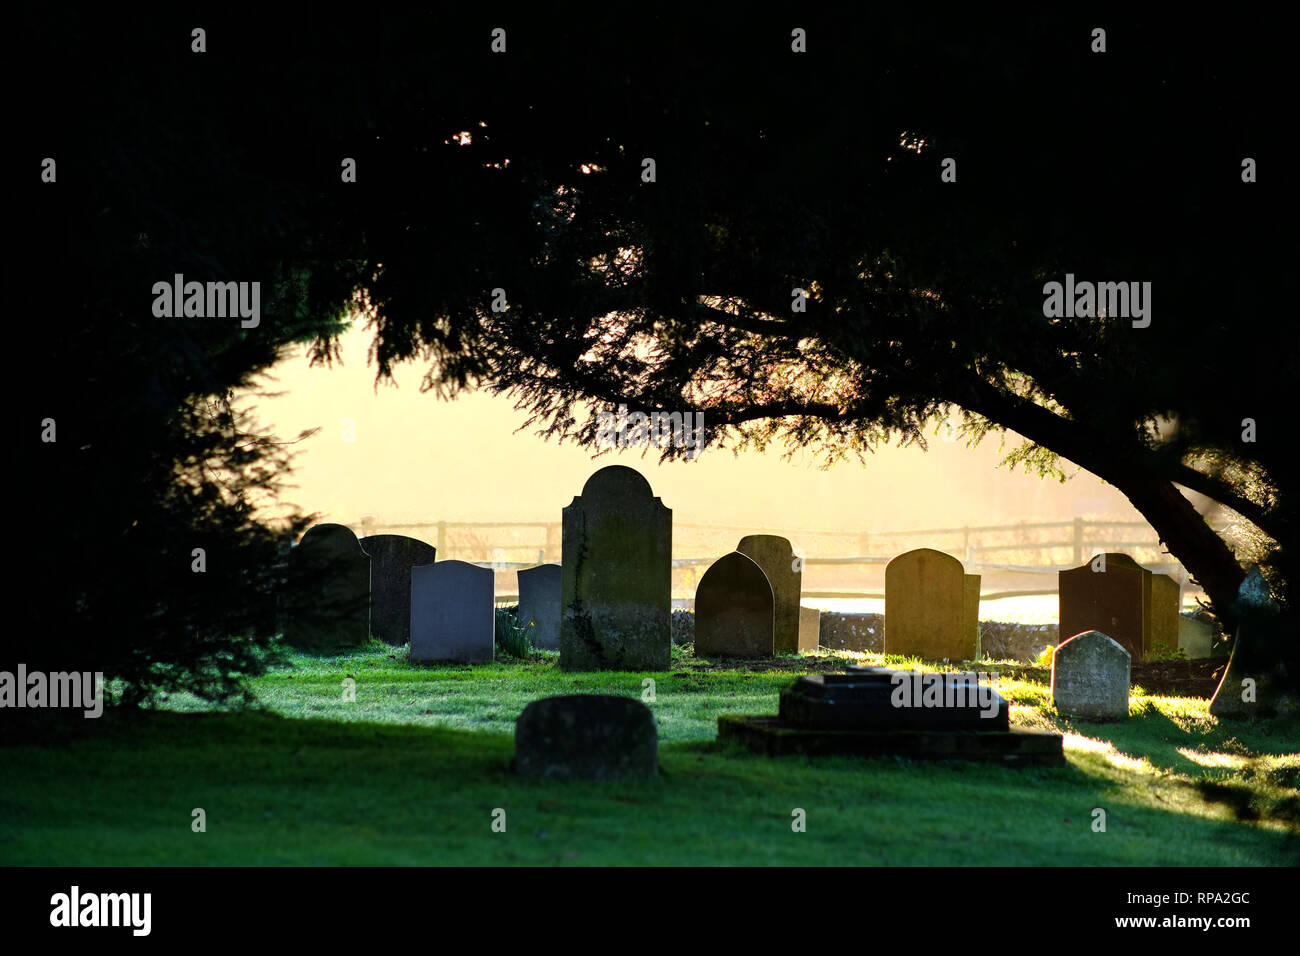 Graves in a village churchyard. - Stock Image